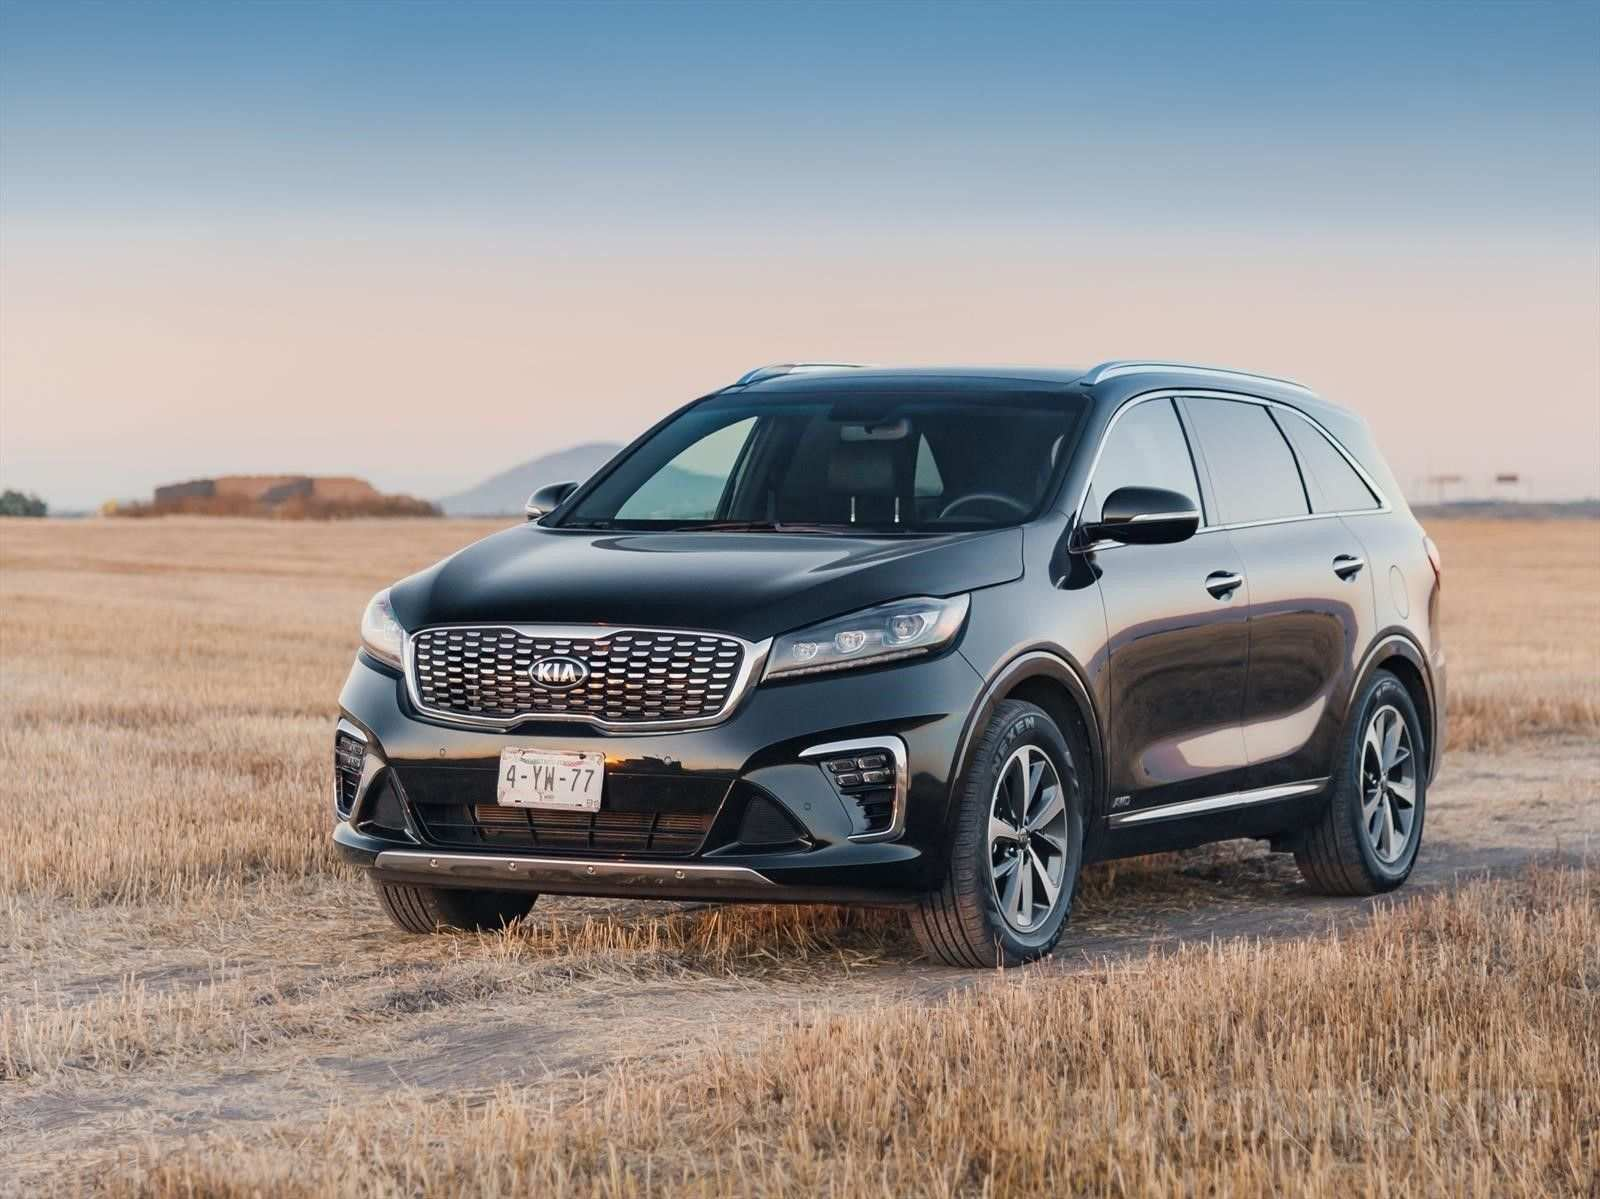 82 Gallery of Kia 2019 Mexico Exterior by Kia 2019 Mexico